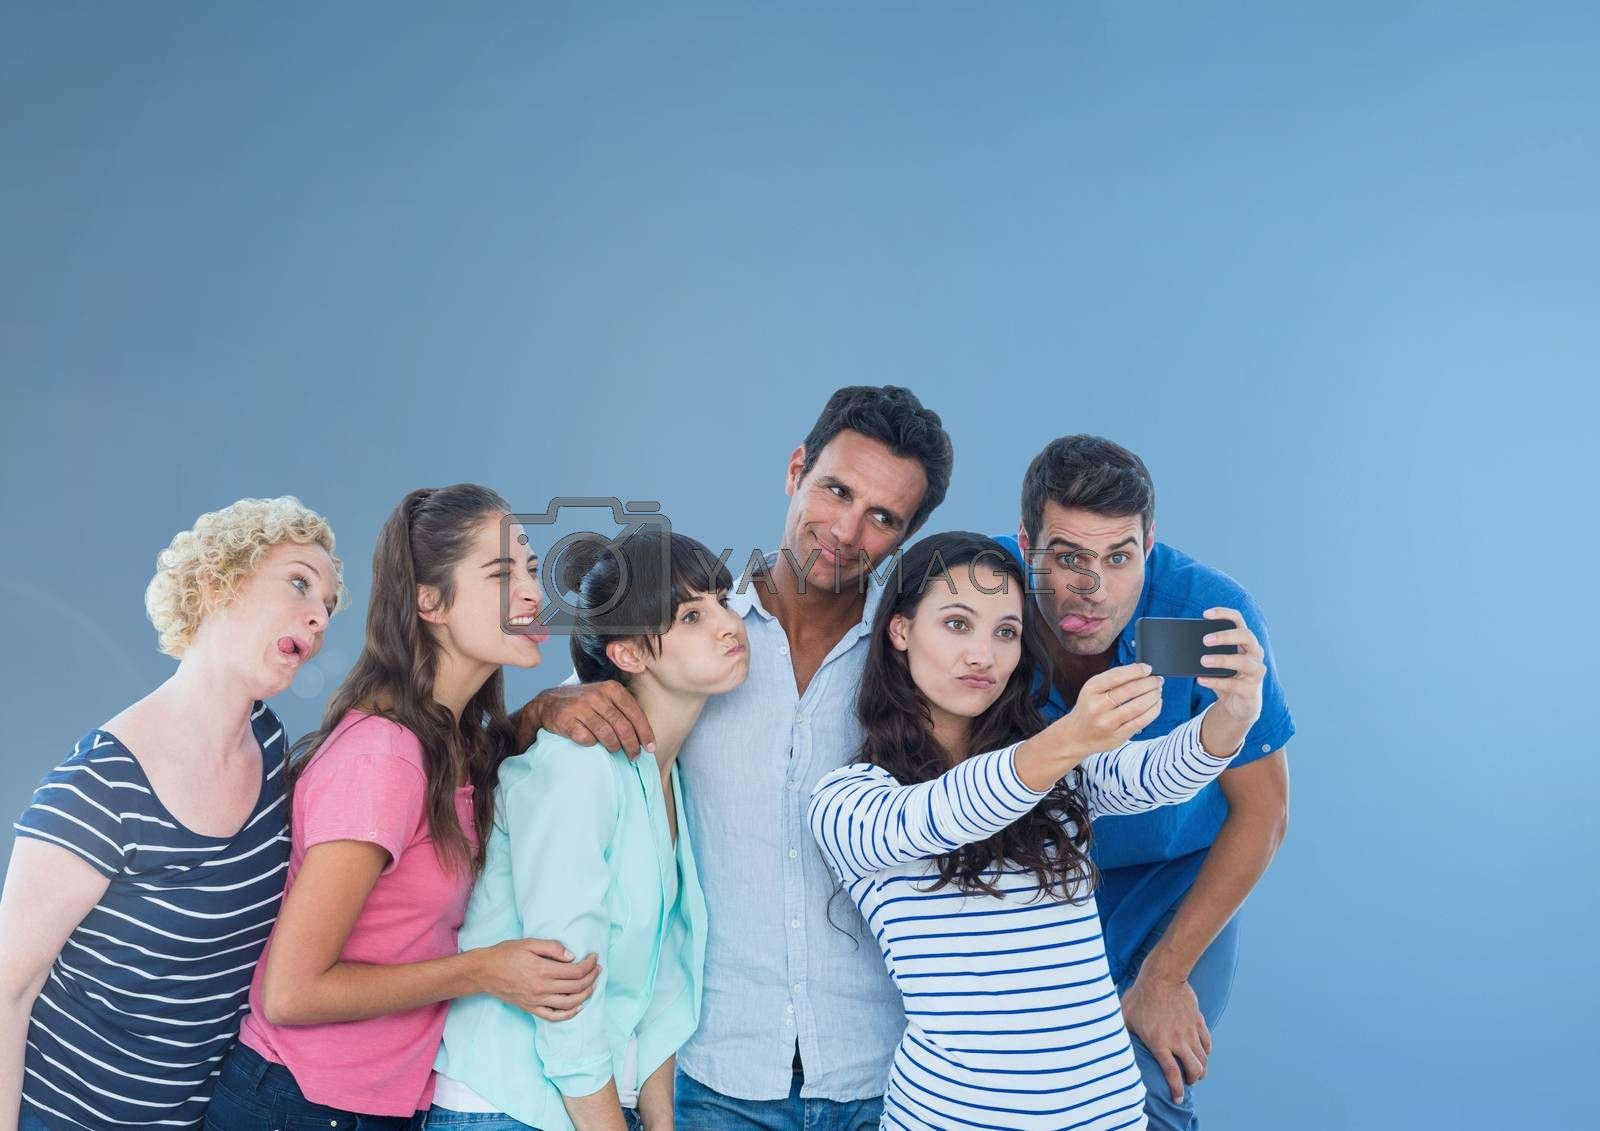 Group of people taking a funny silly selfie in front of blue background by Wavebreakmedia